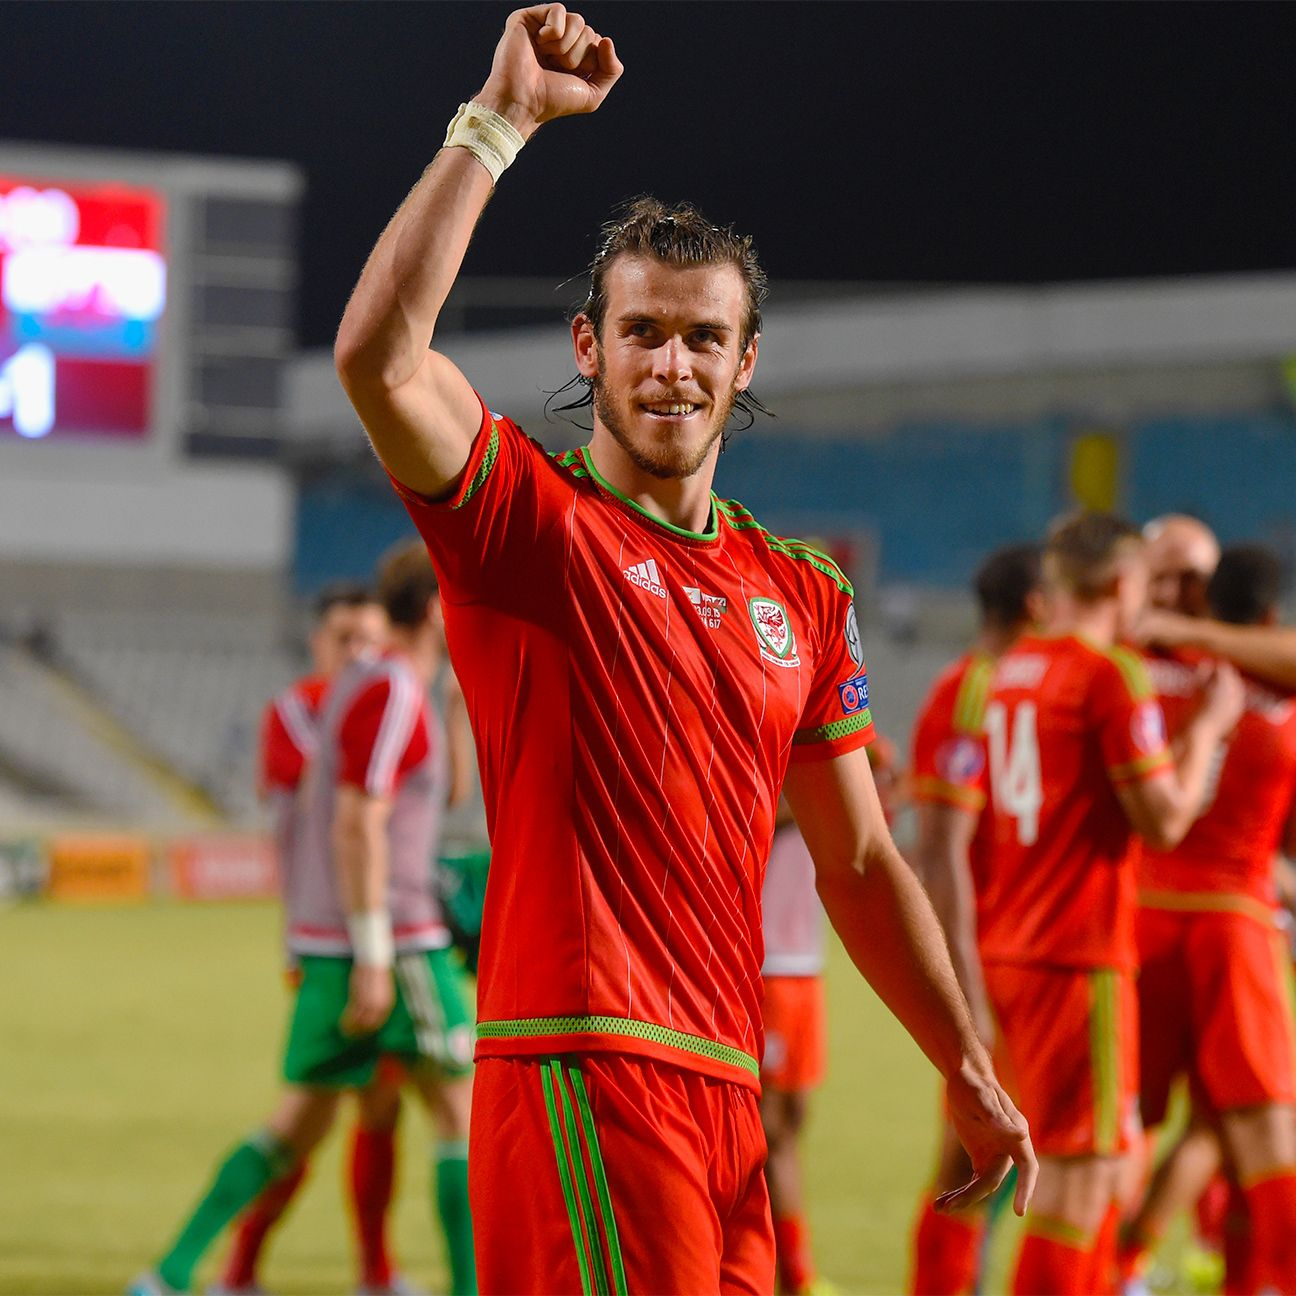 Gareth Bale has led Wales to the brink of their first major tournament in almost 58 years.